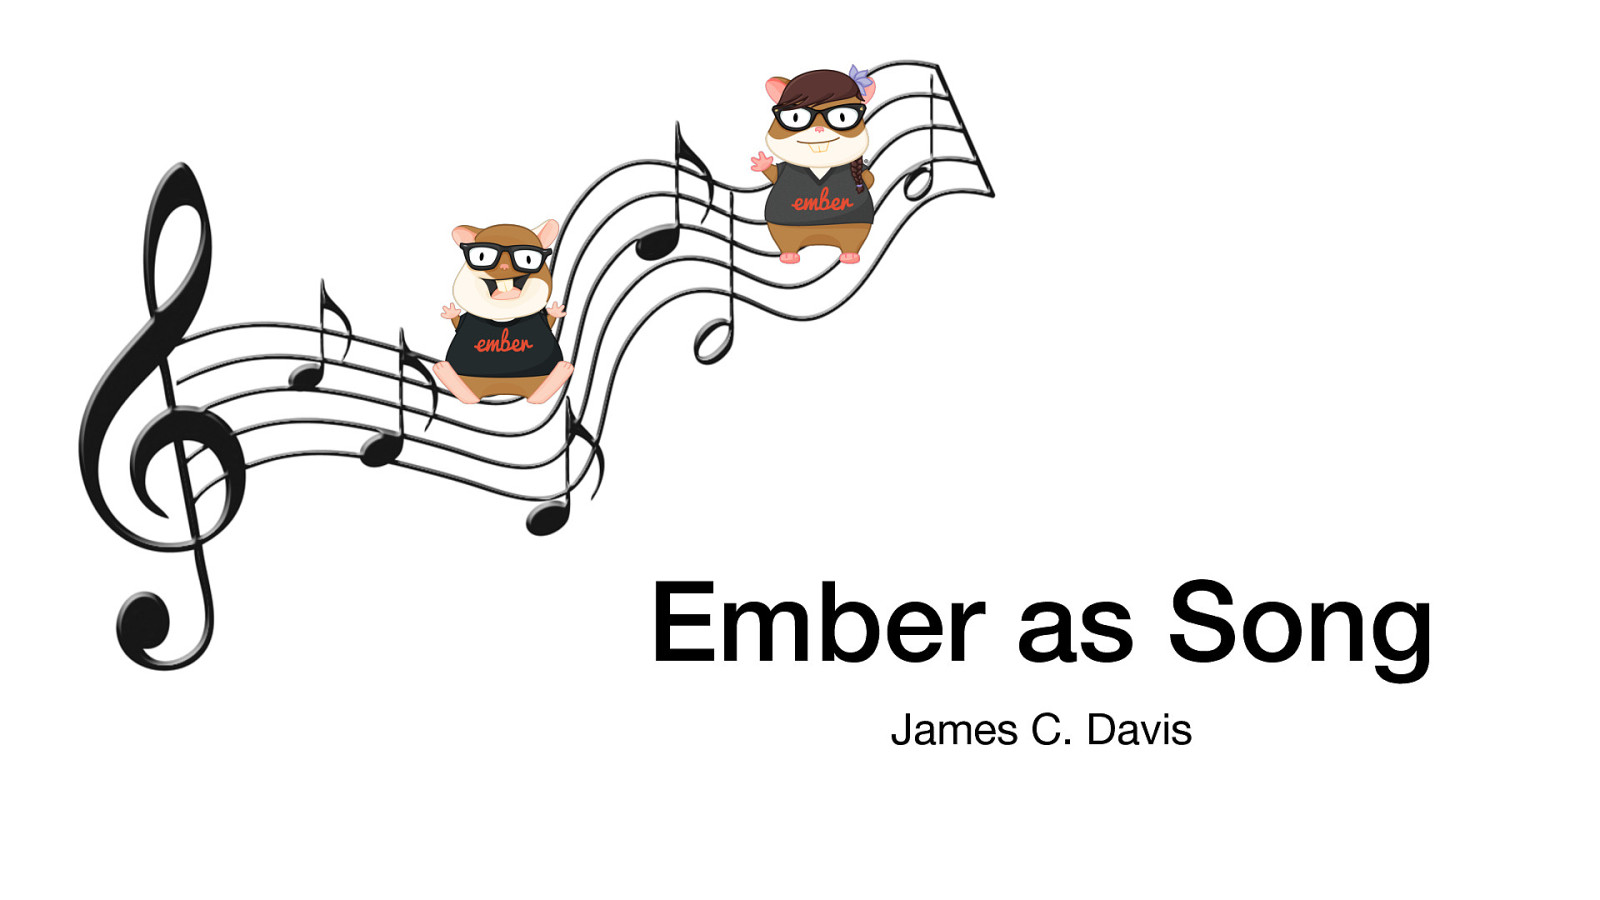 Ember as Song